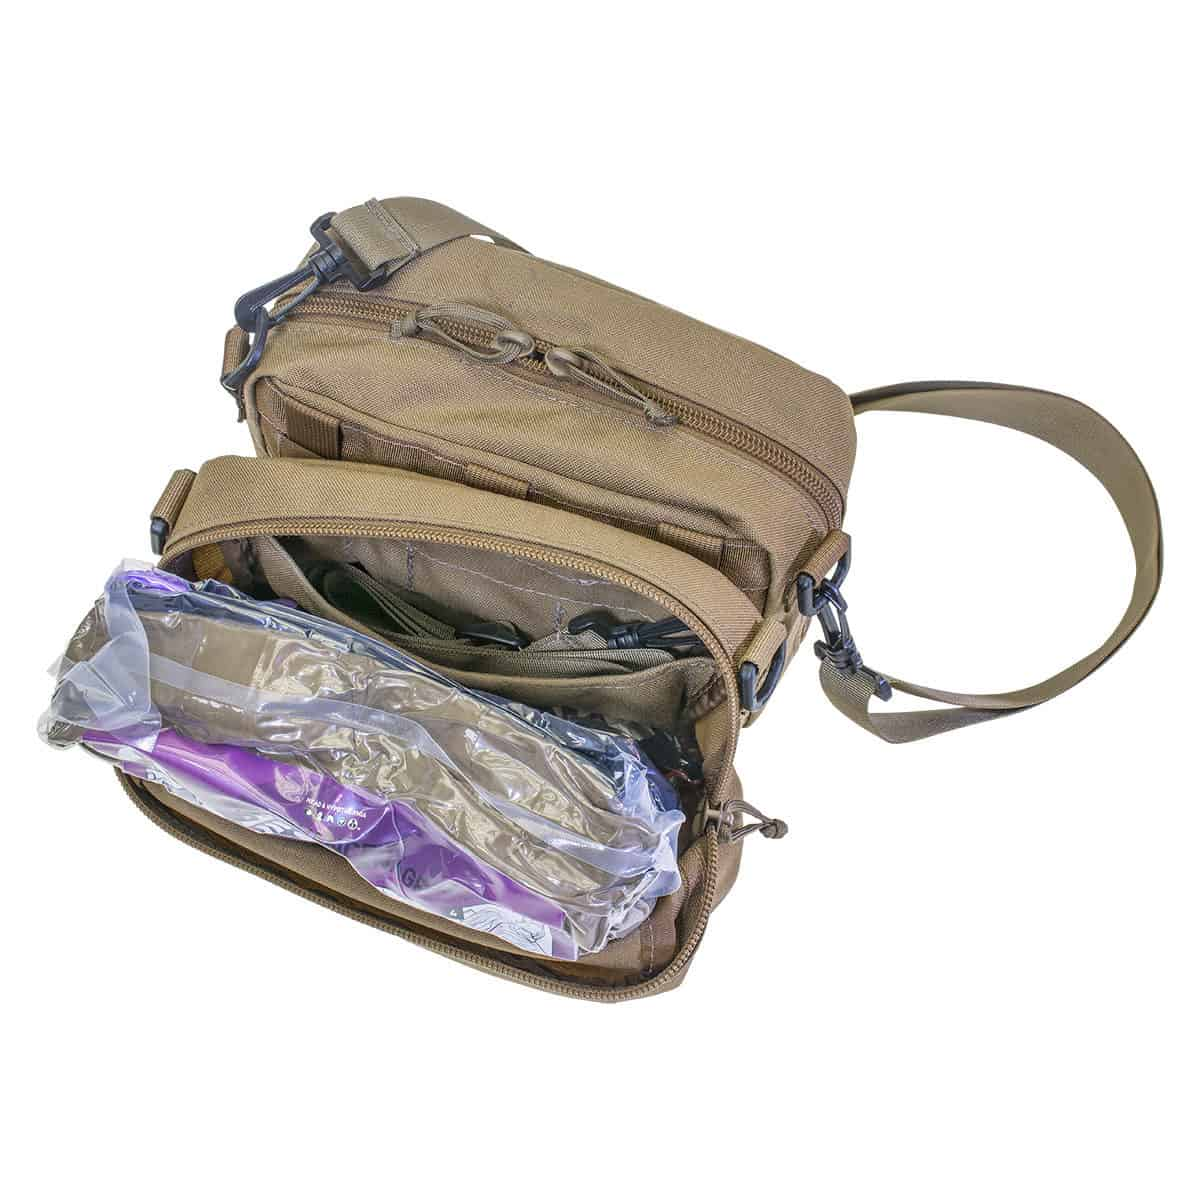 HAWK™ carrier opened shoulder strap pocket